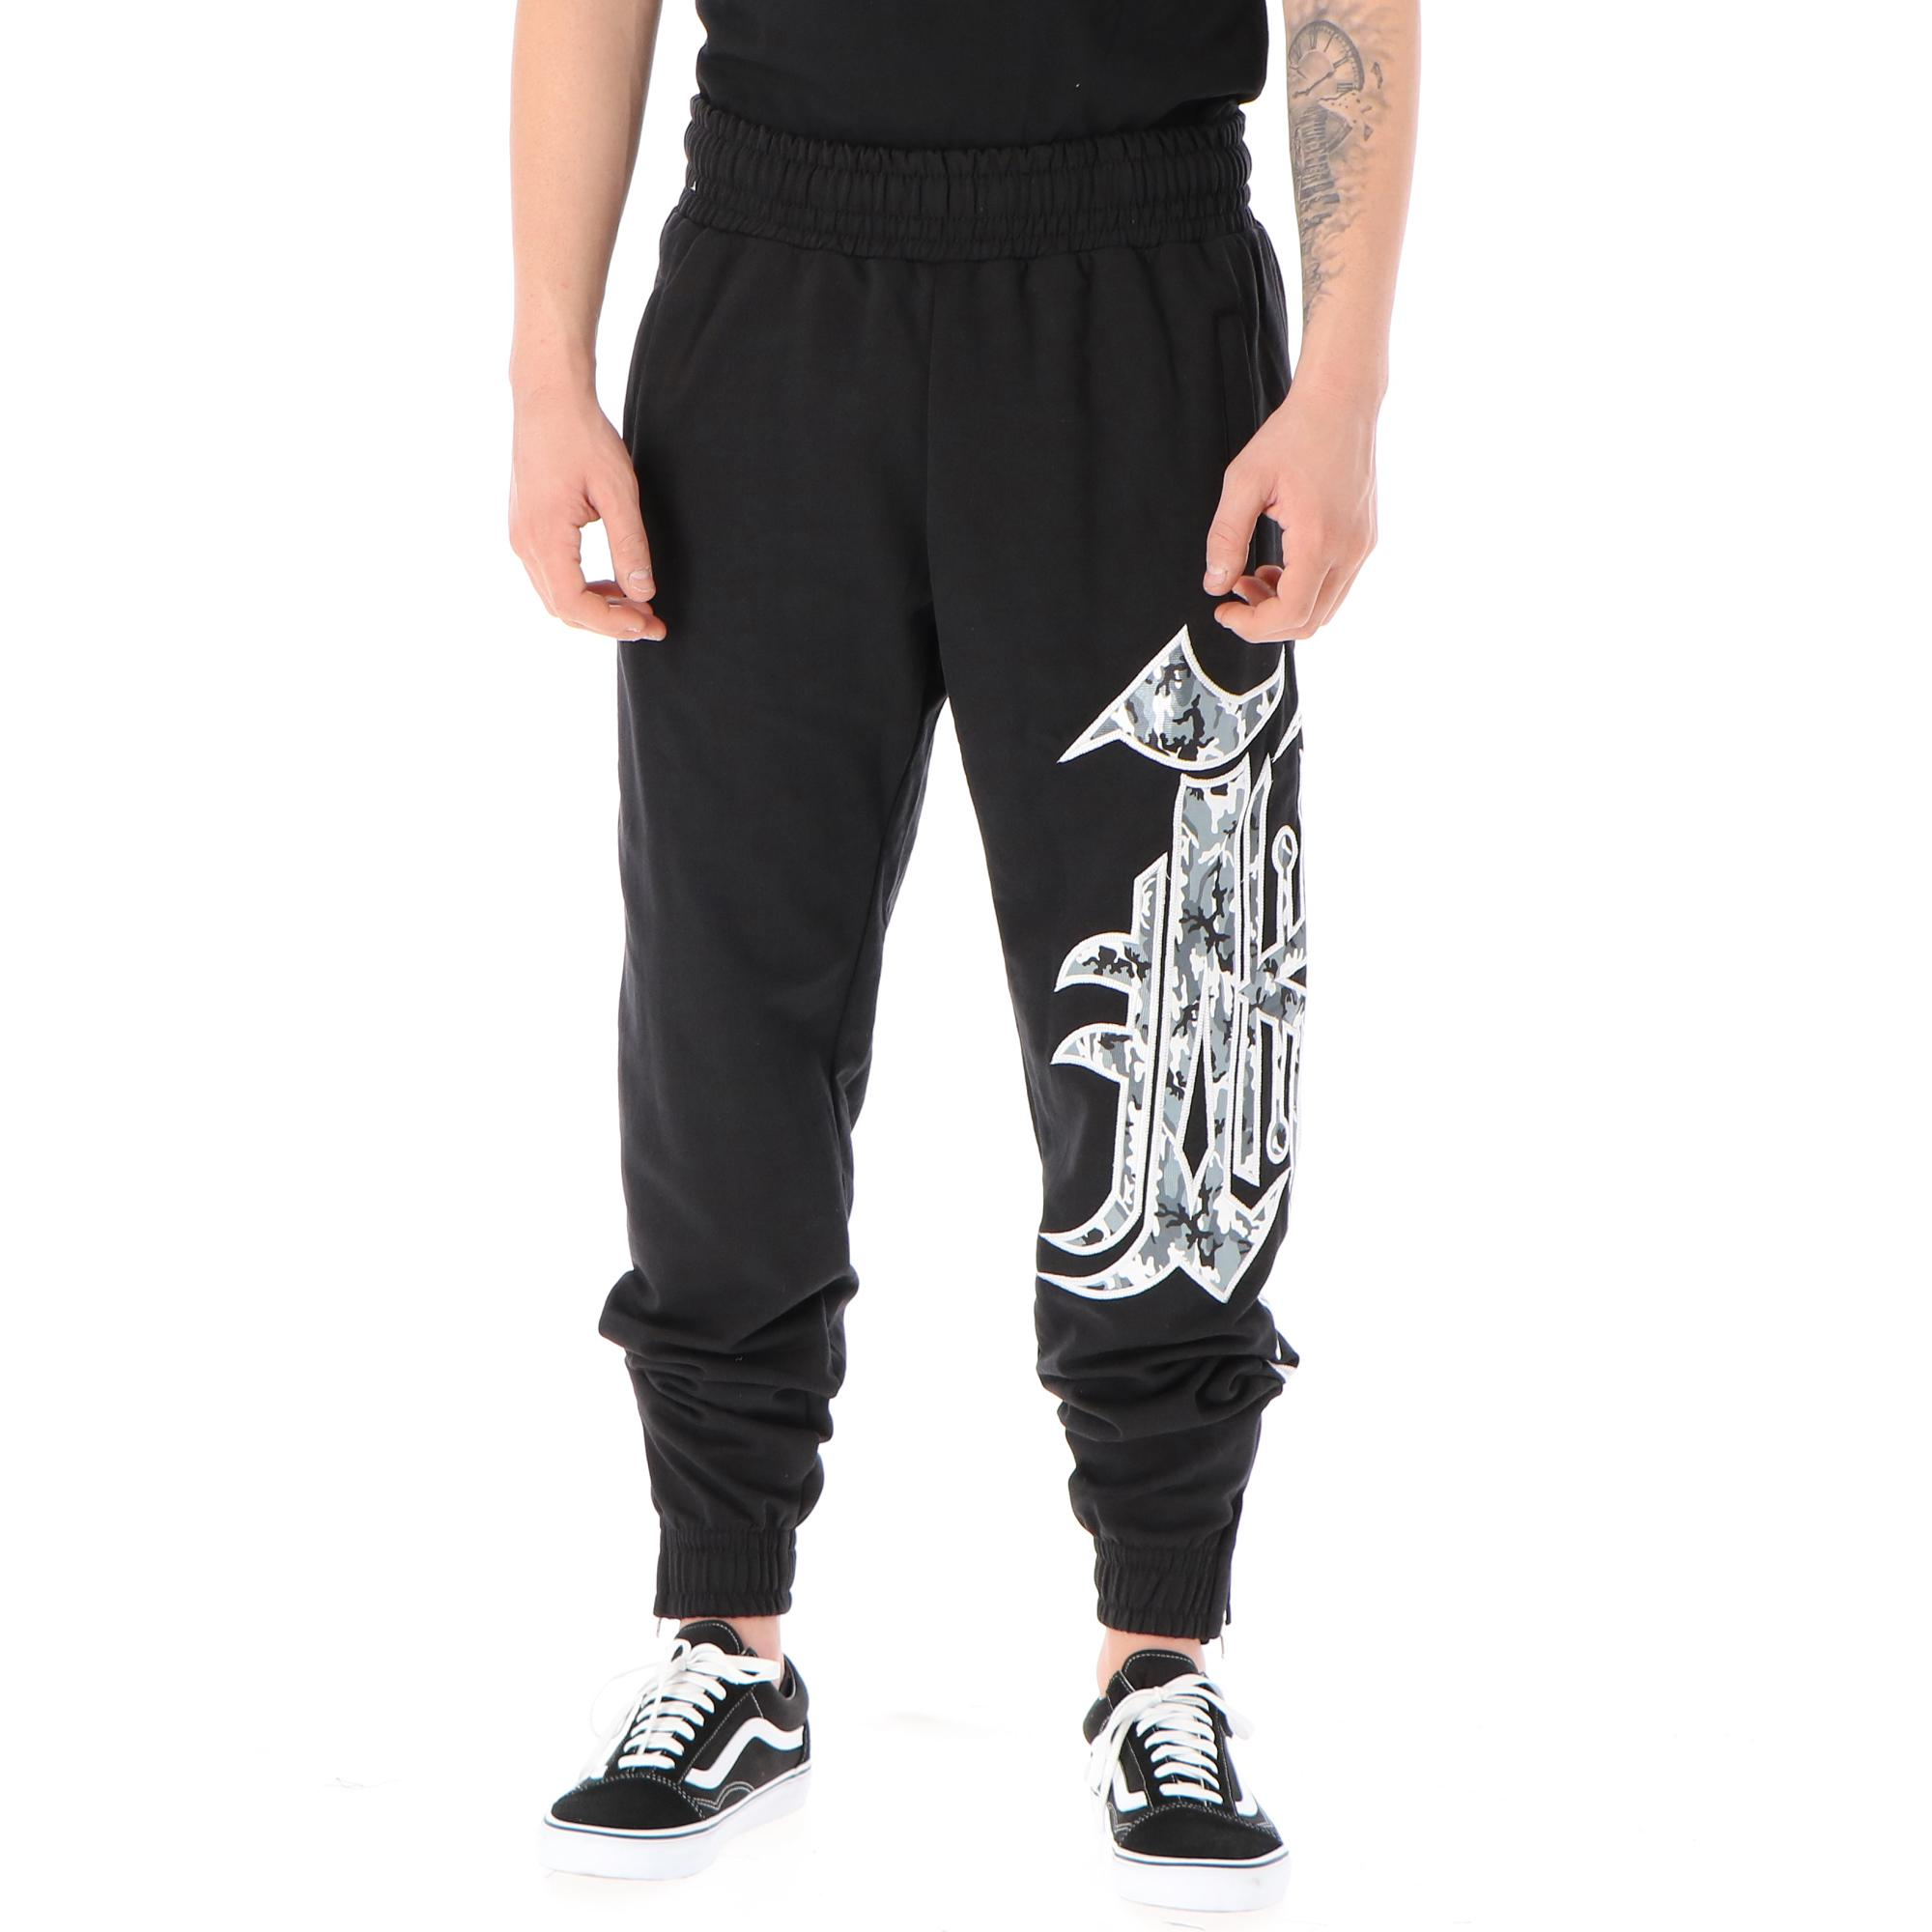 Kali King Kk Pant Black camo